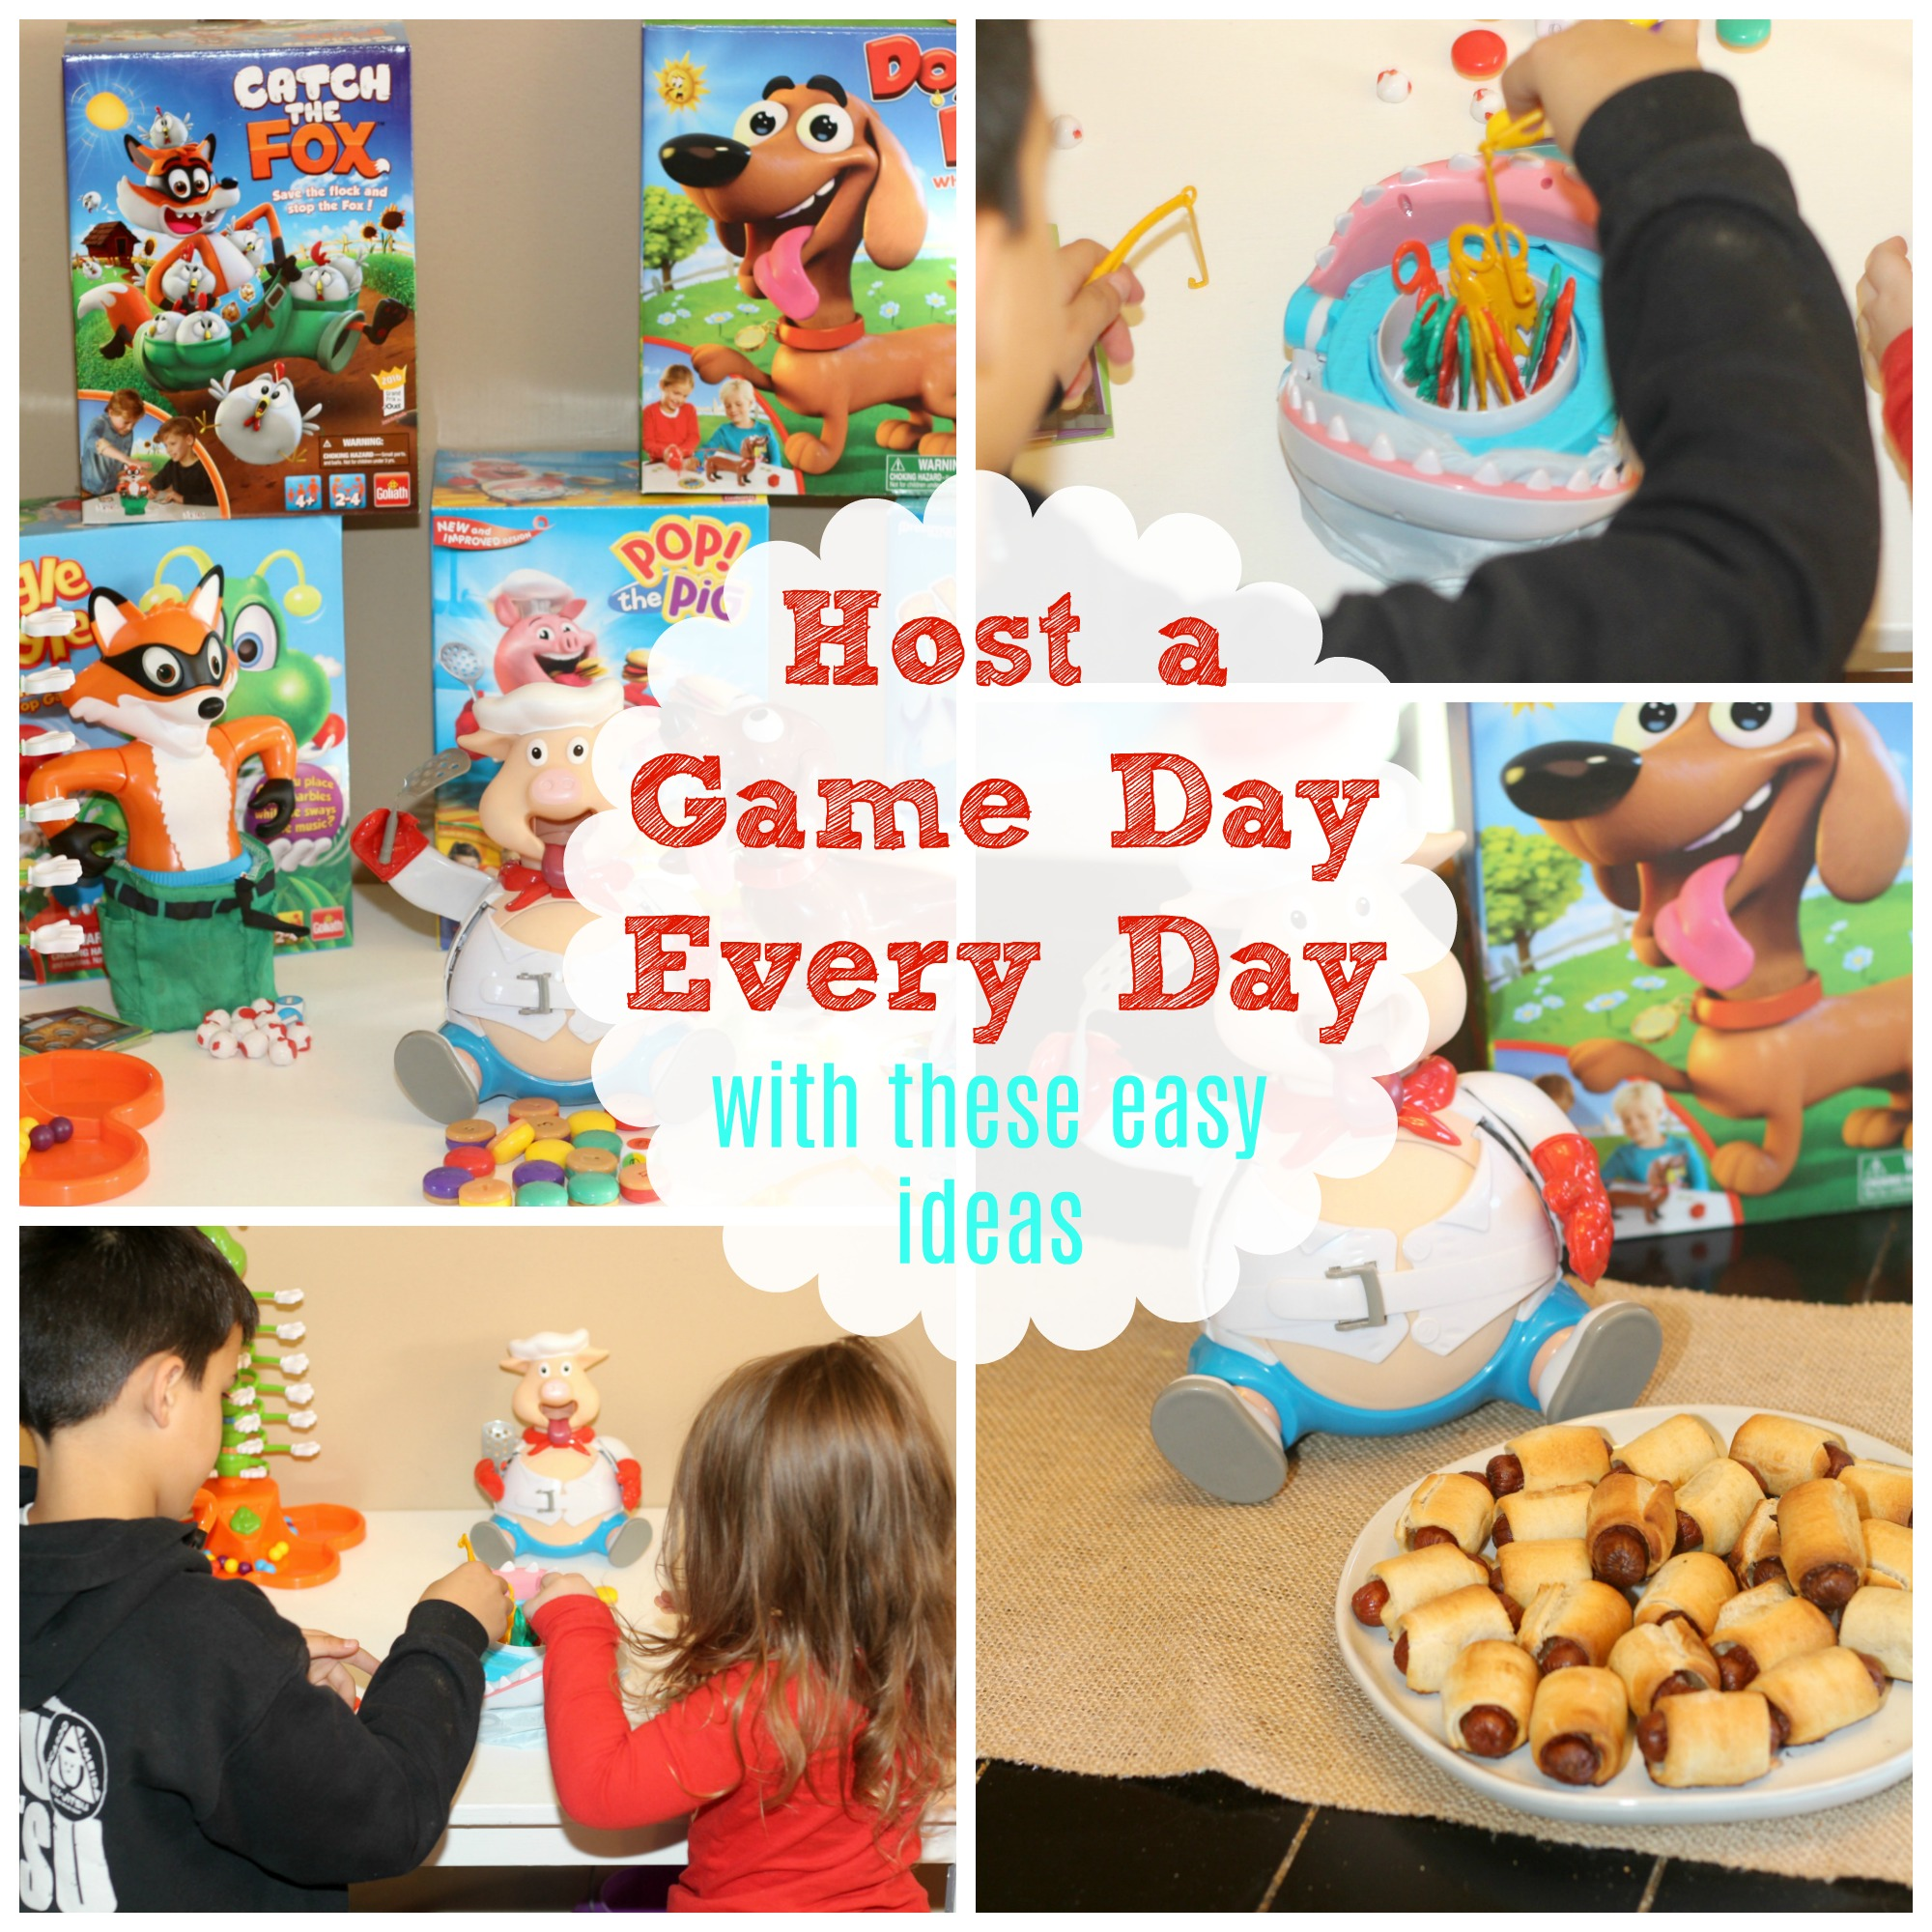 Make it Game Day Every Day - Tips to Host an Epic Game Day